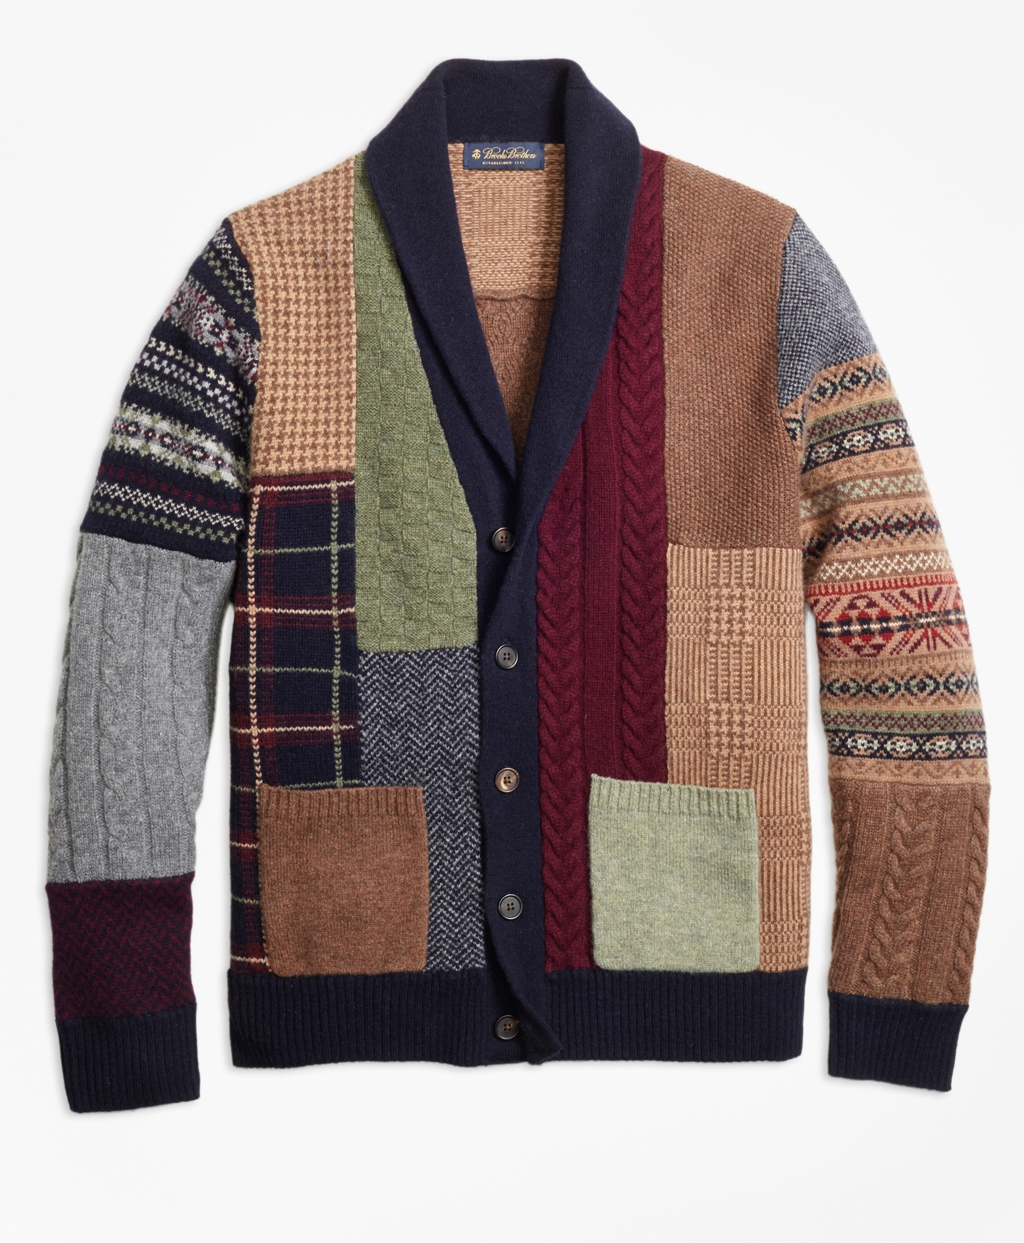 Panel Discussion The Brooks Brothers Patchwork Cardigan